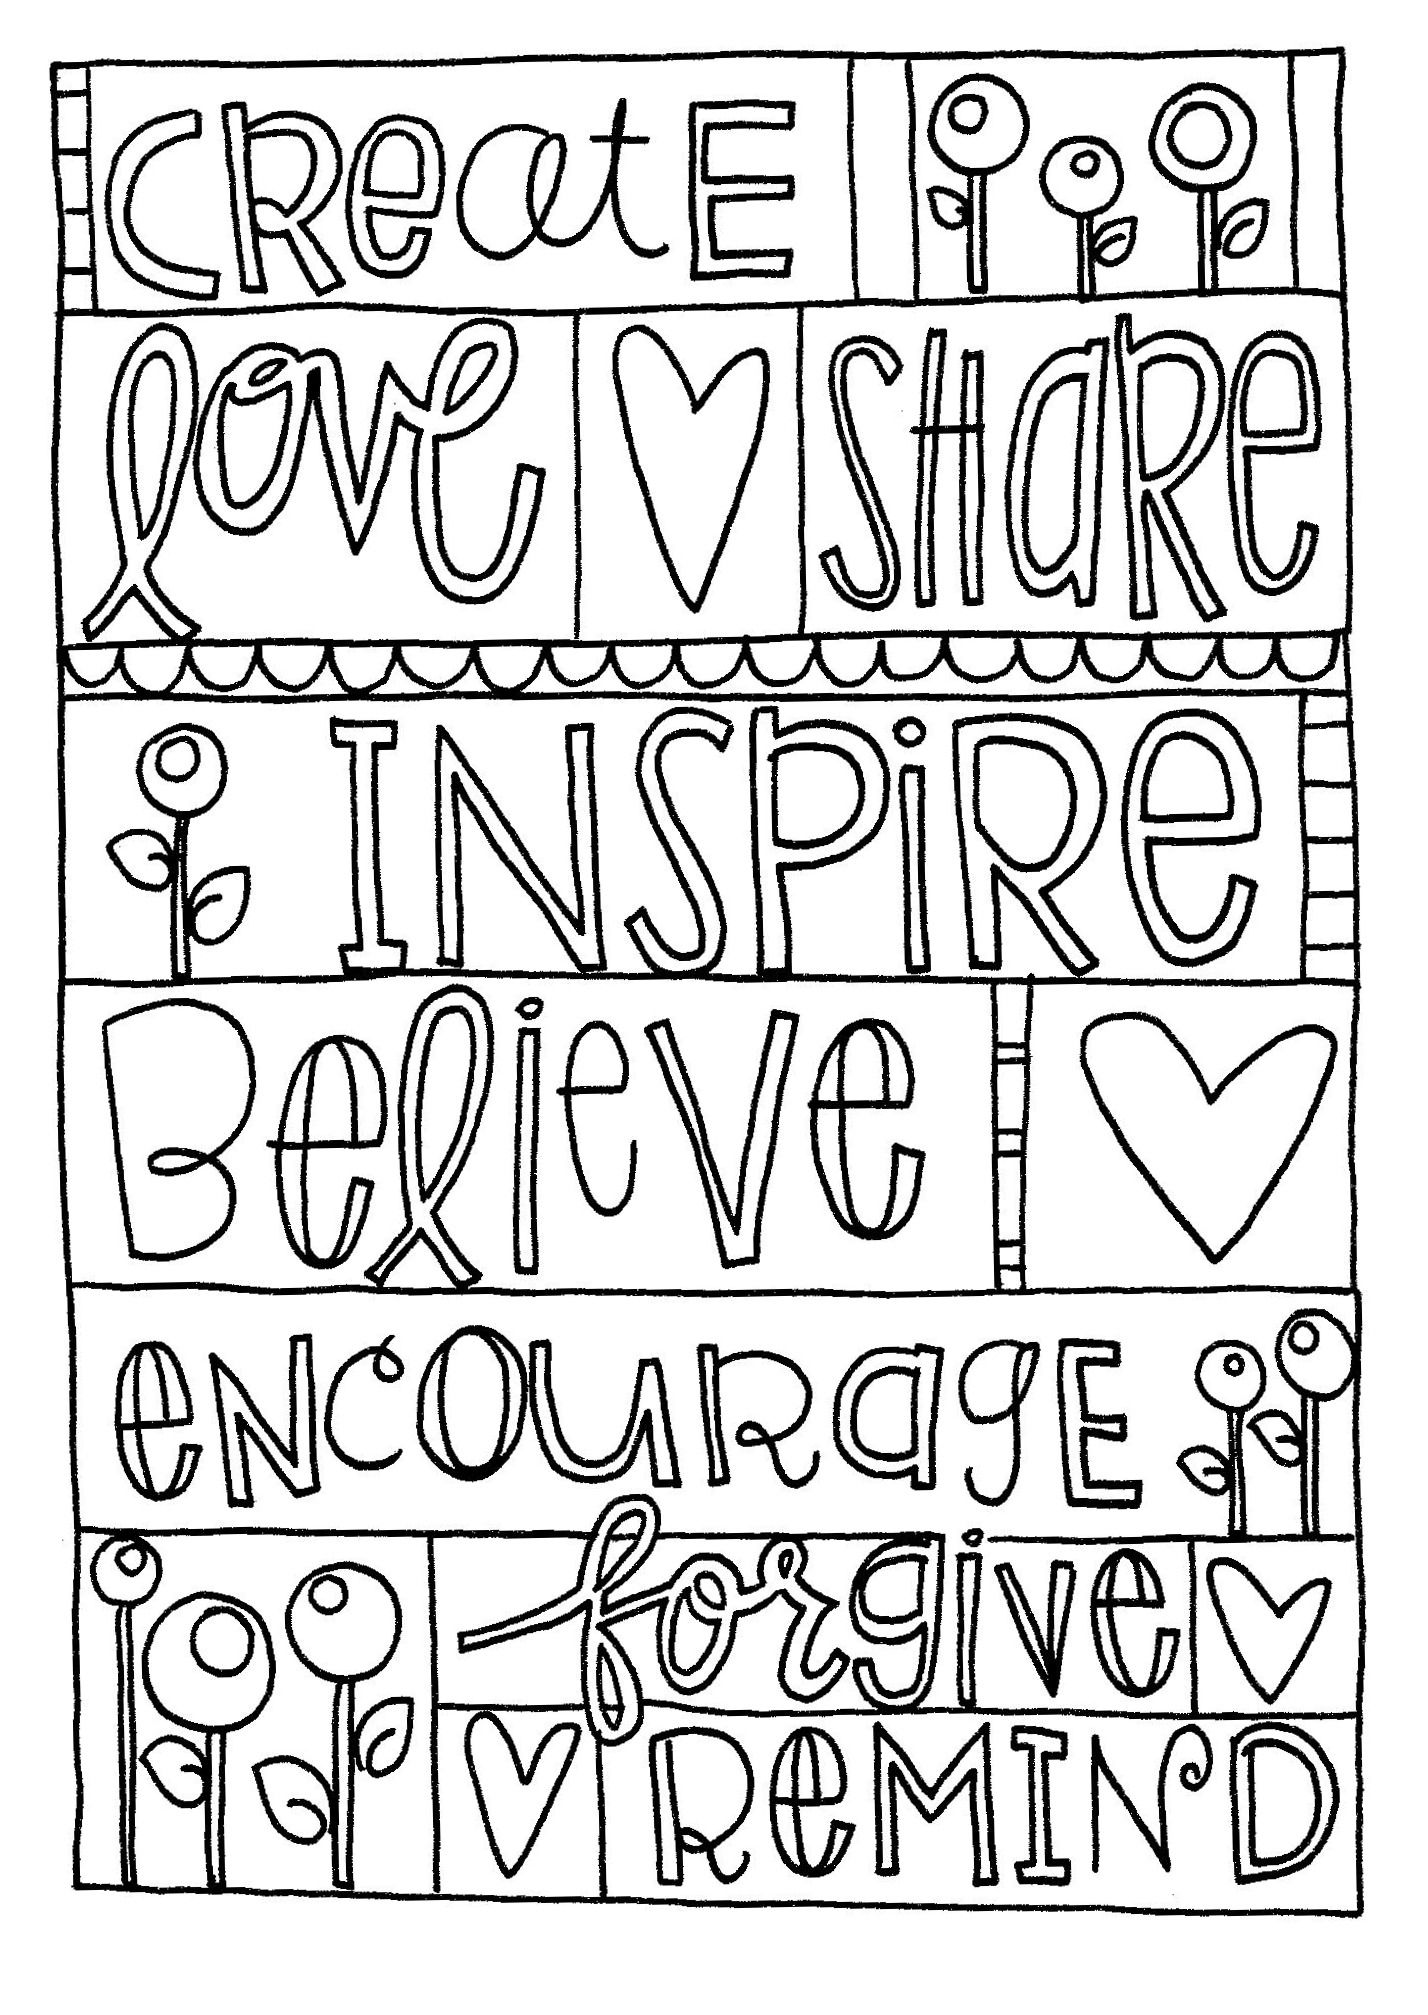 1428x2015 Awesome Crazy Coloring Pattern Design Pic Of Love One Another Page